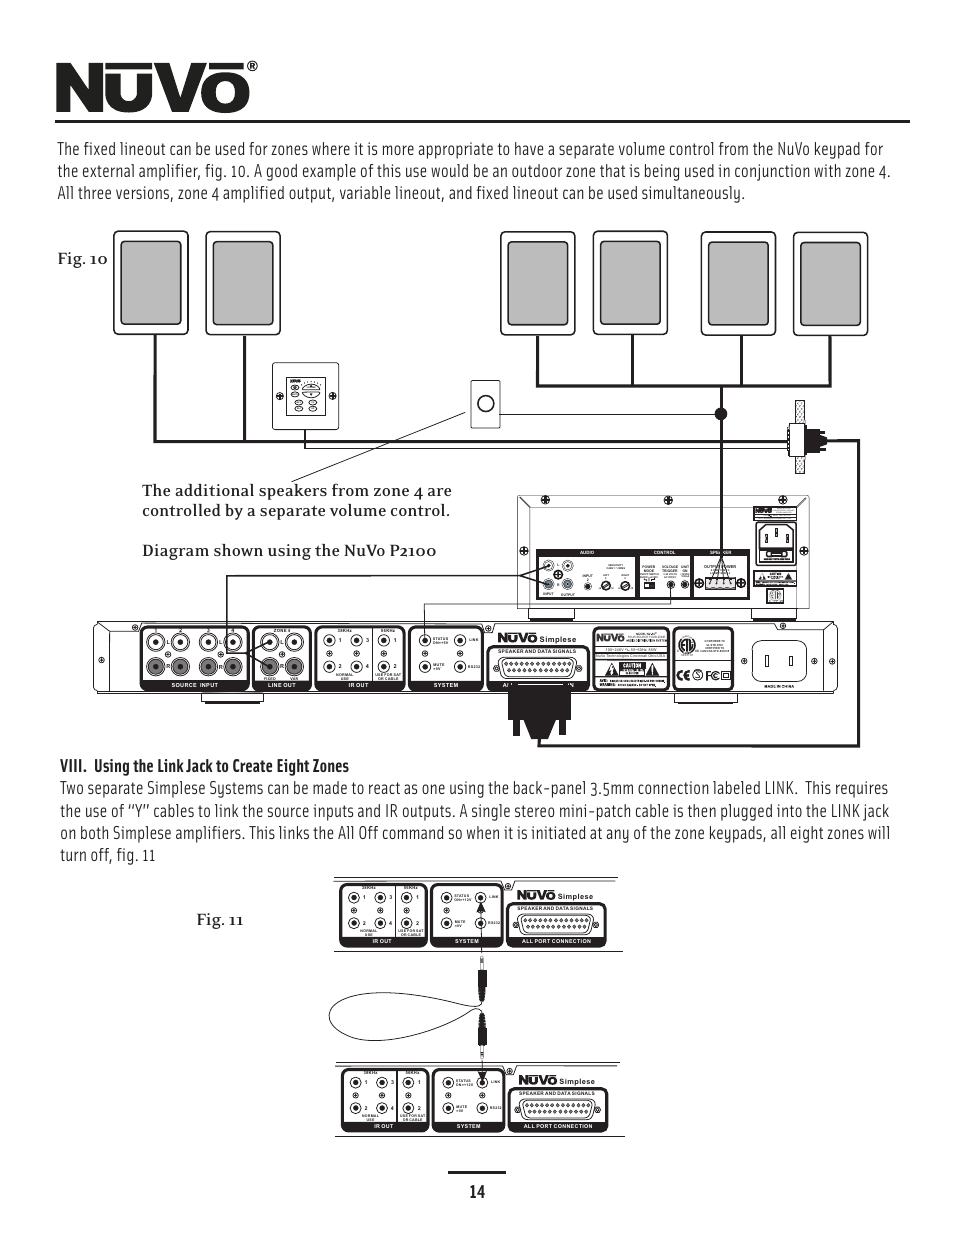 nuvo simplese nv a4ds uk page17 fixed lineout and link, viii using the link jack nuvo simplese nuvo simplese wiring diagram at virtualis.co